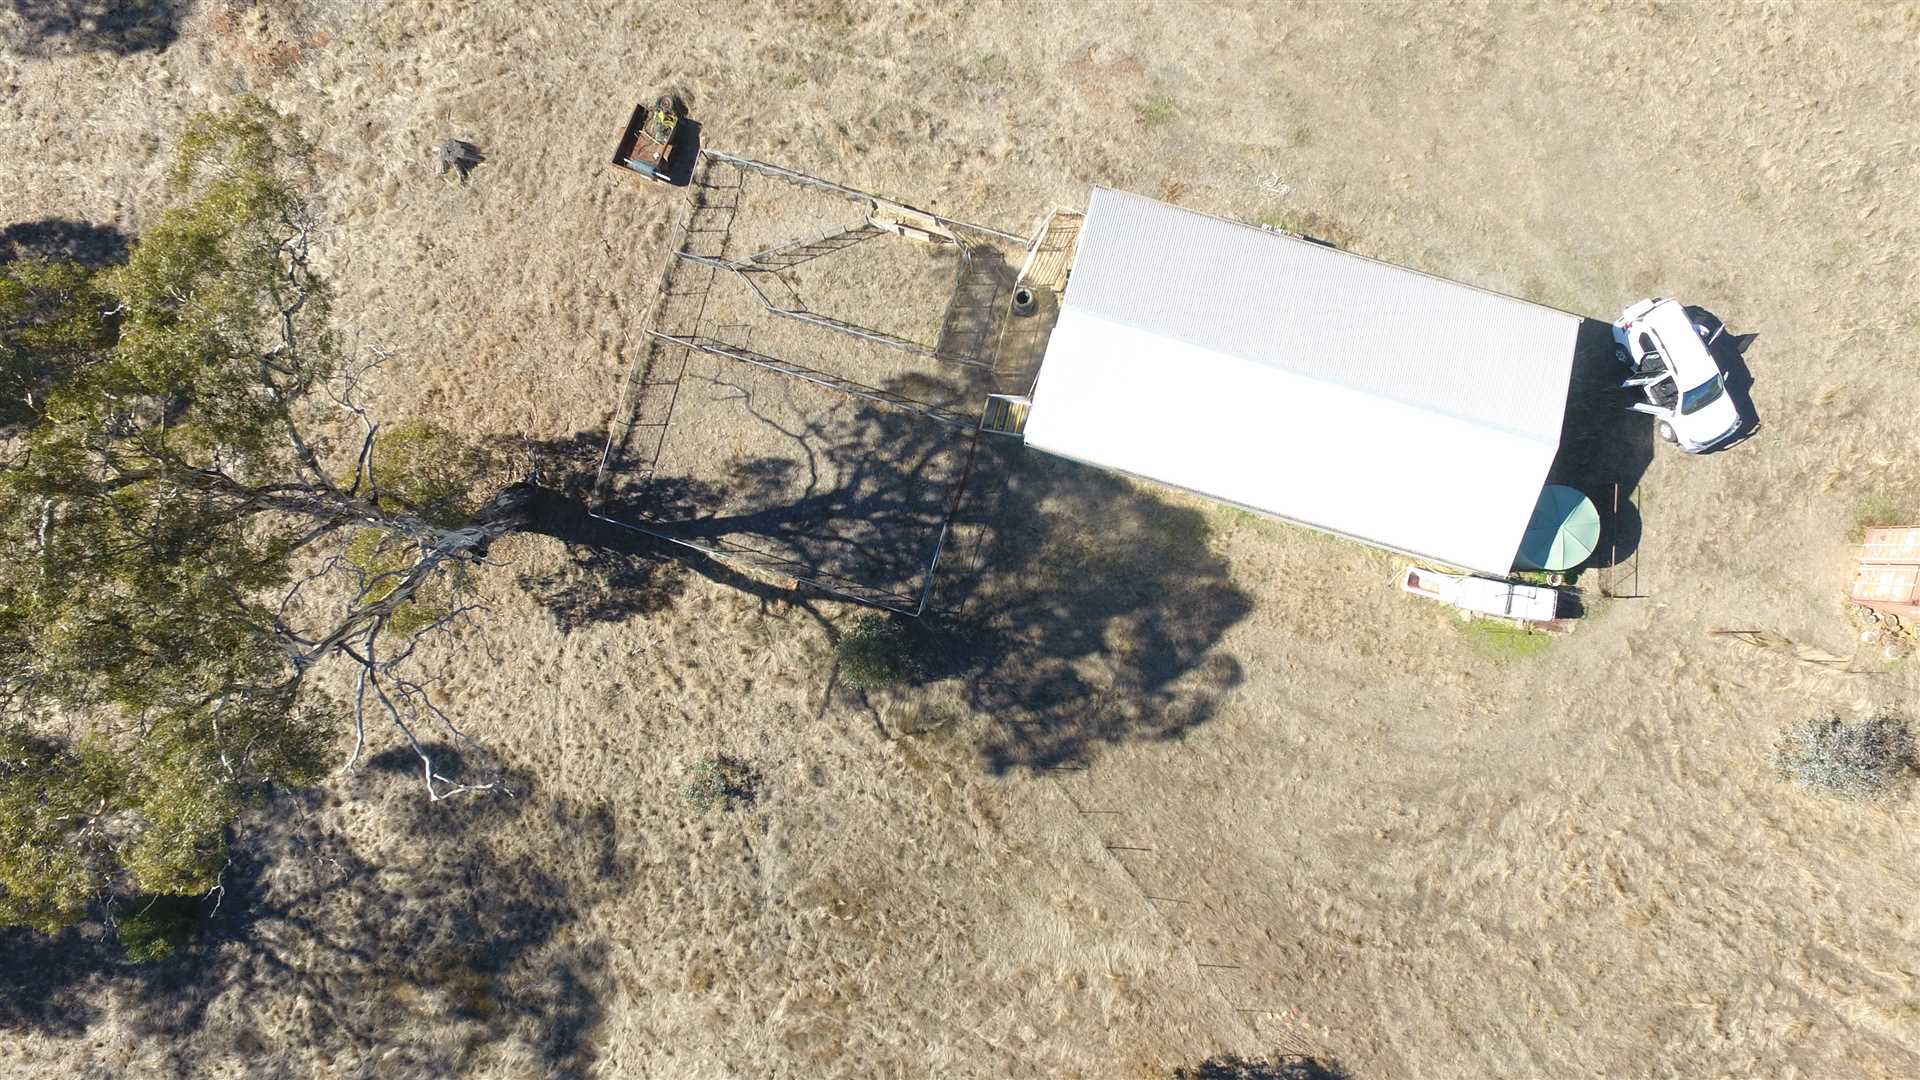 Overhead View of Shearing Shed